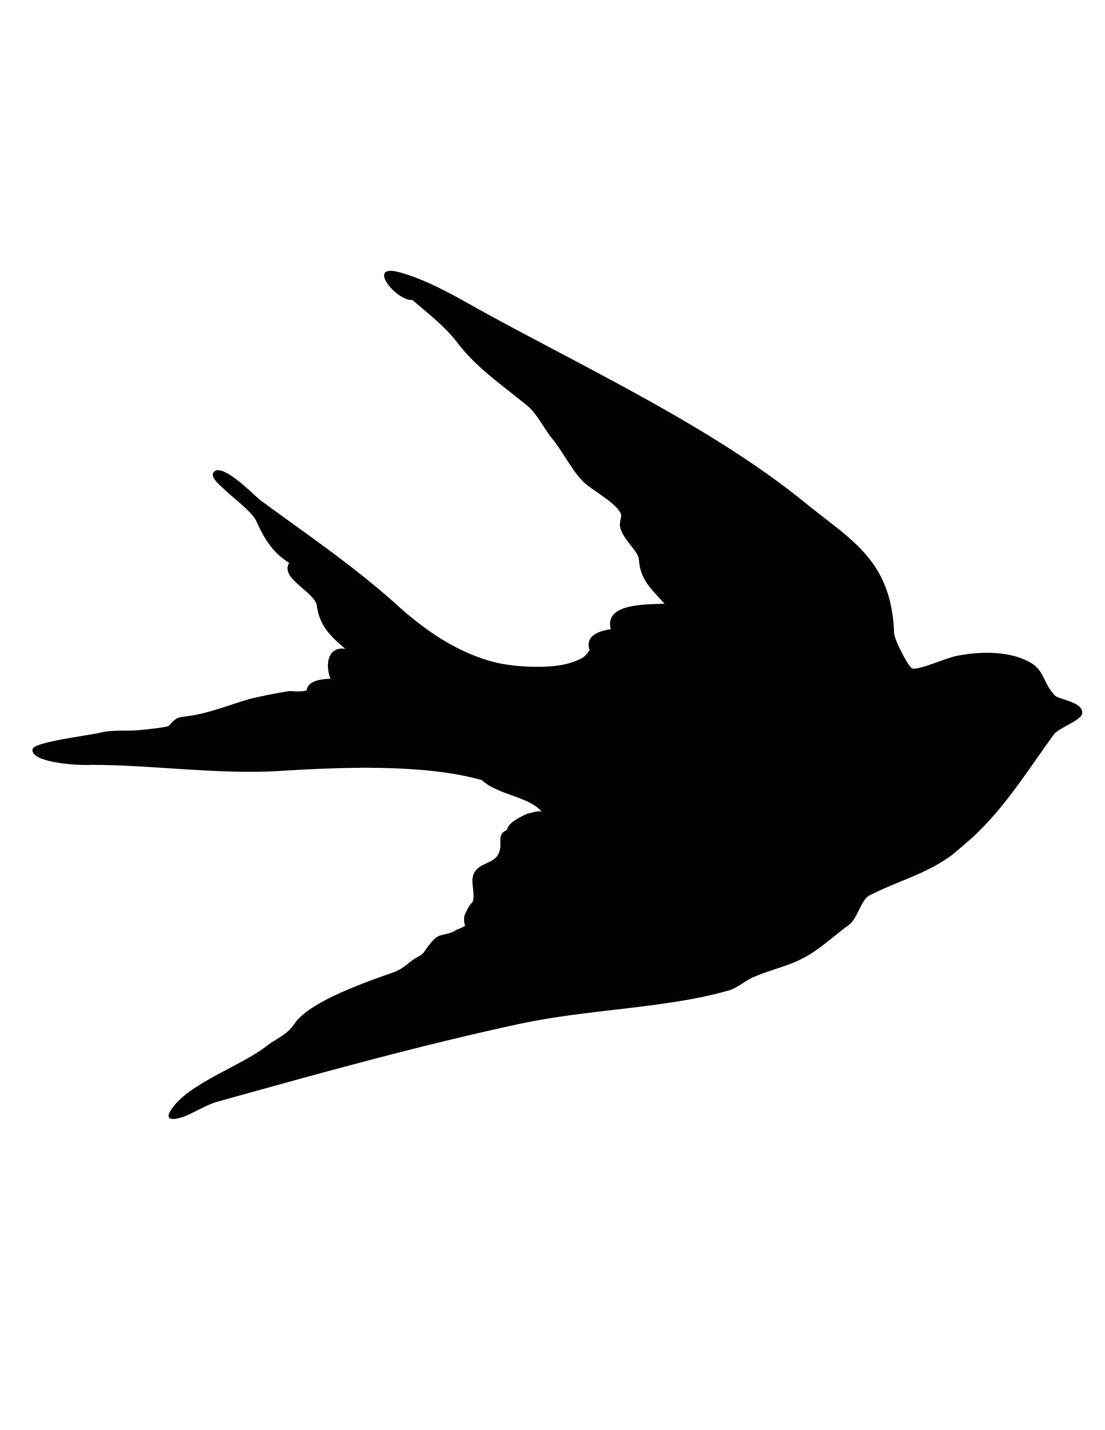 Transfer Printables Bird Silhouettes Swa-Transfer Printables Bird Silhouettes Swallows The Graphics Fairy-18